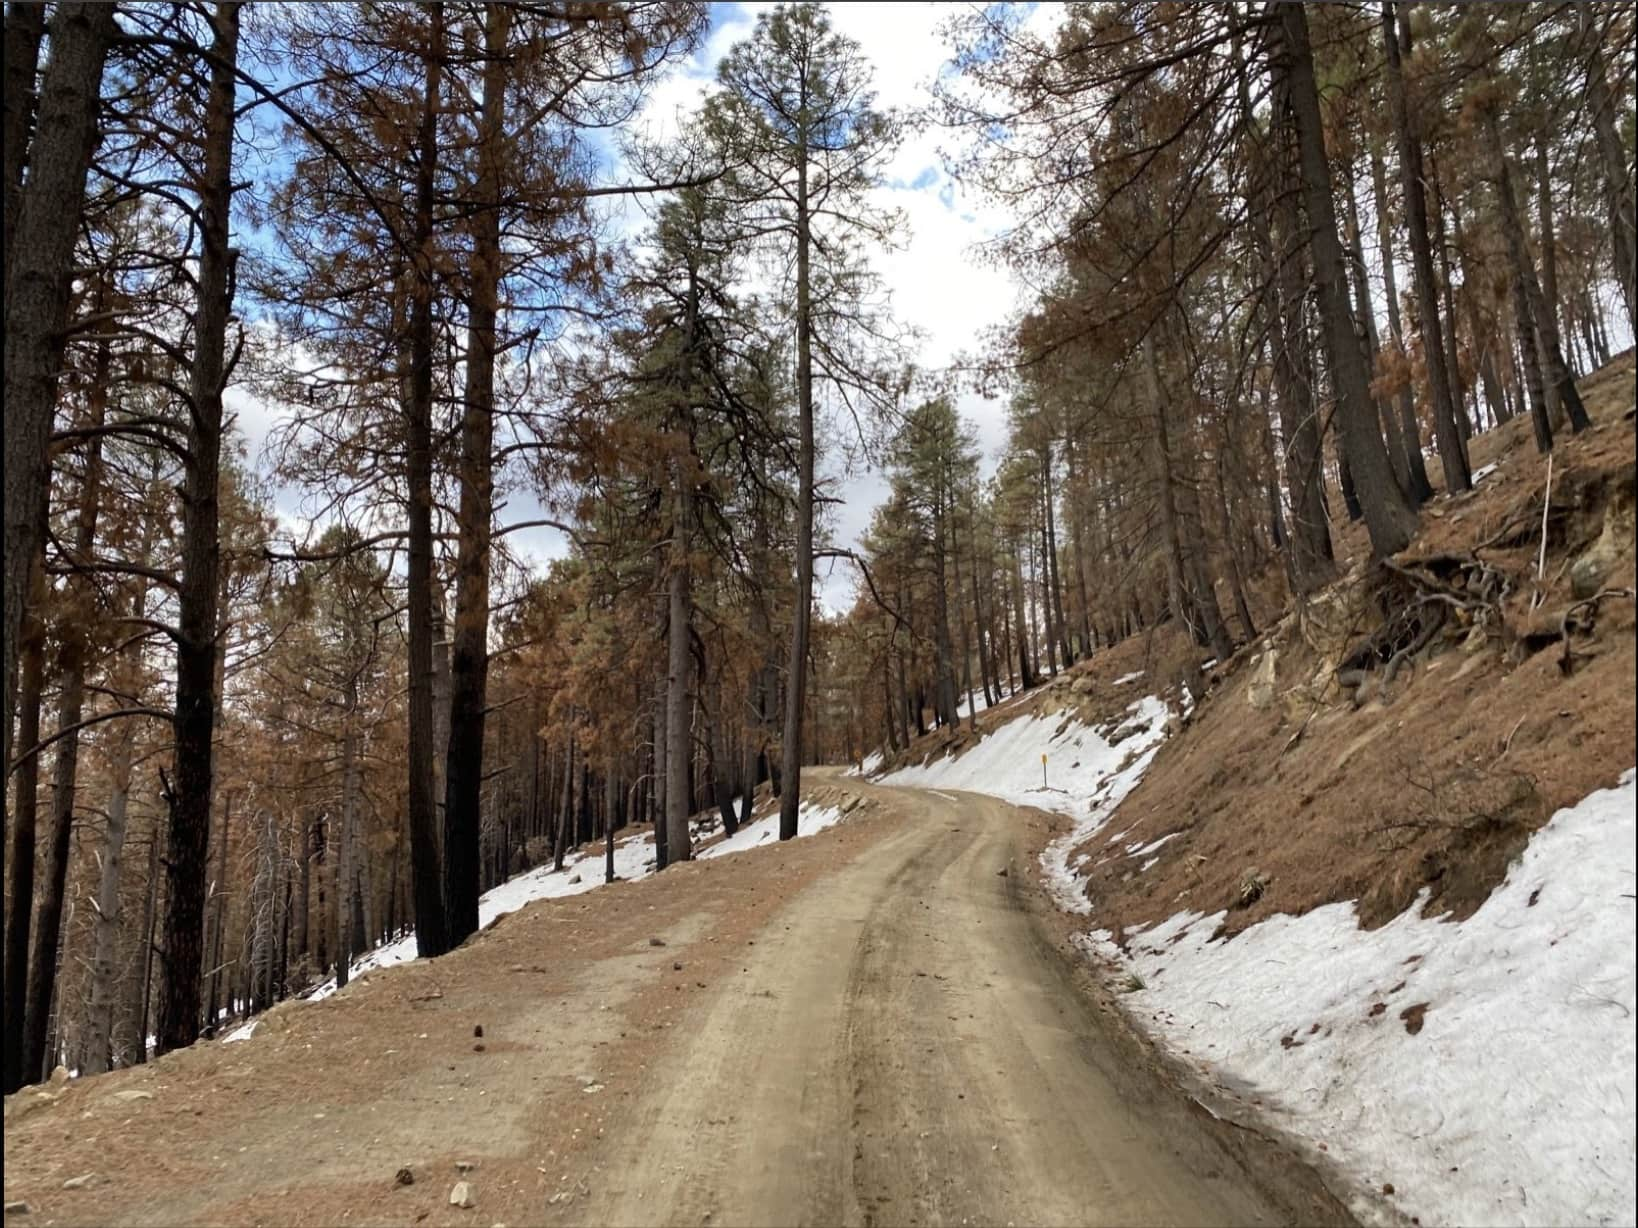 The Mt Lemmon Control Road in mid-January with snow, gravel, and a little ice.